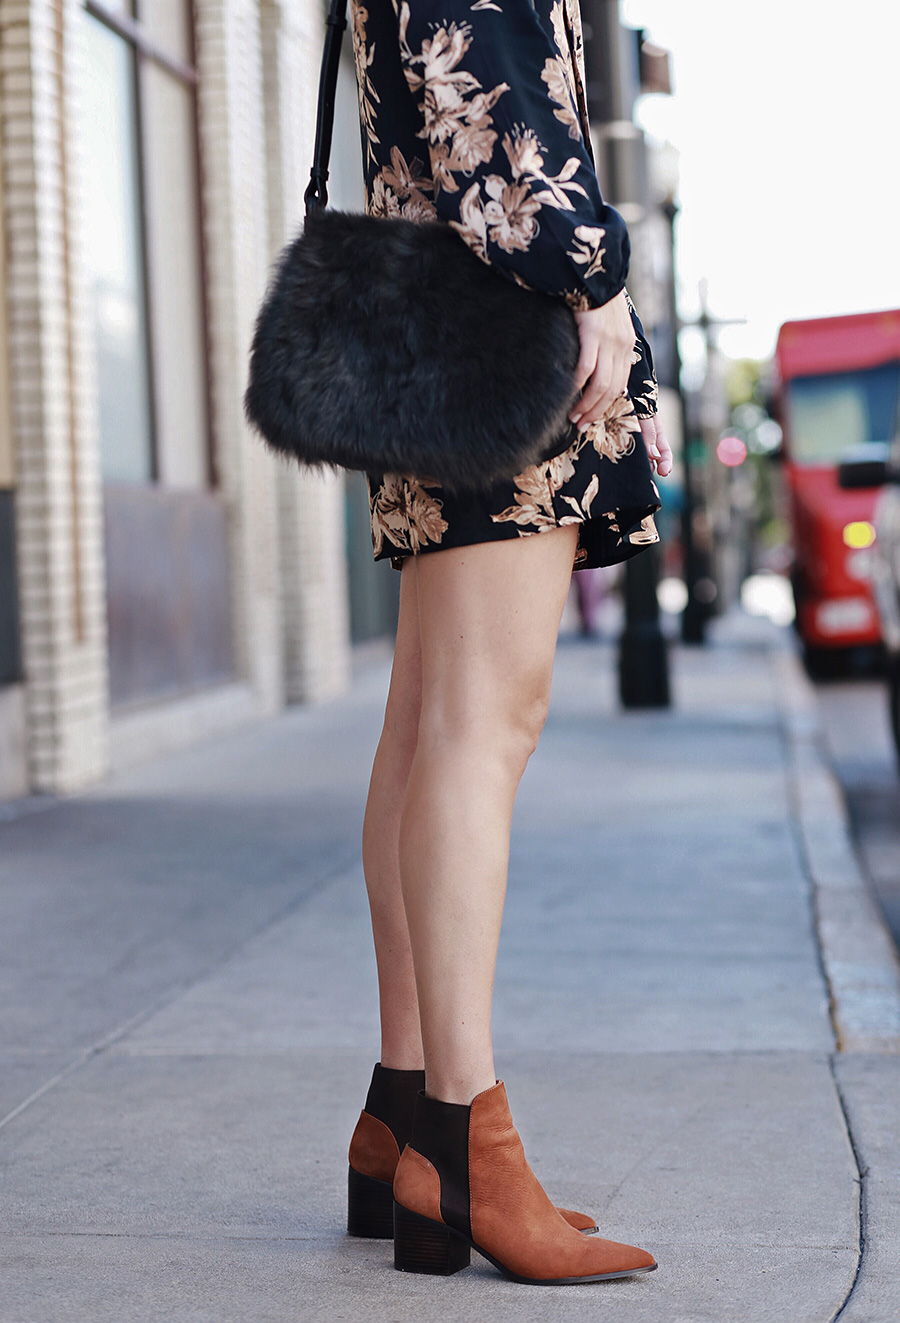 Fuzzy Bag Camel Booties for Fall